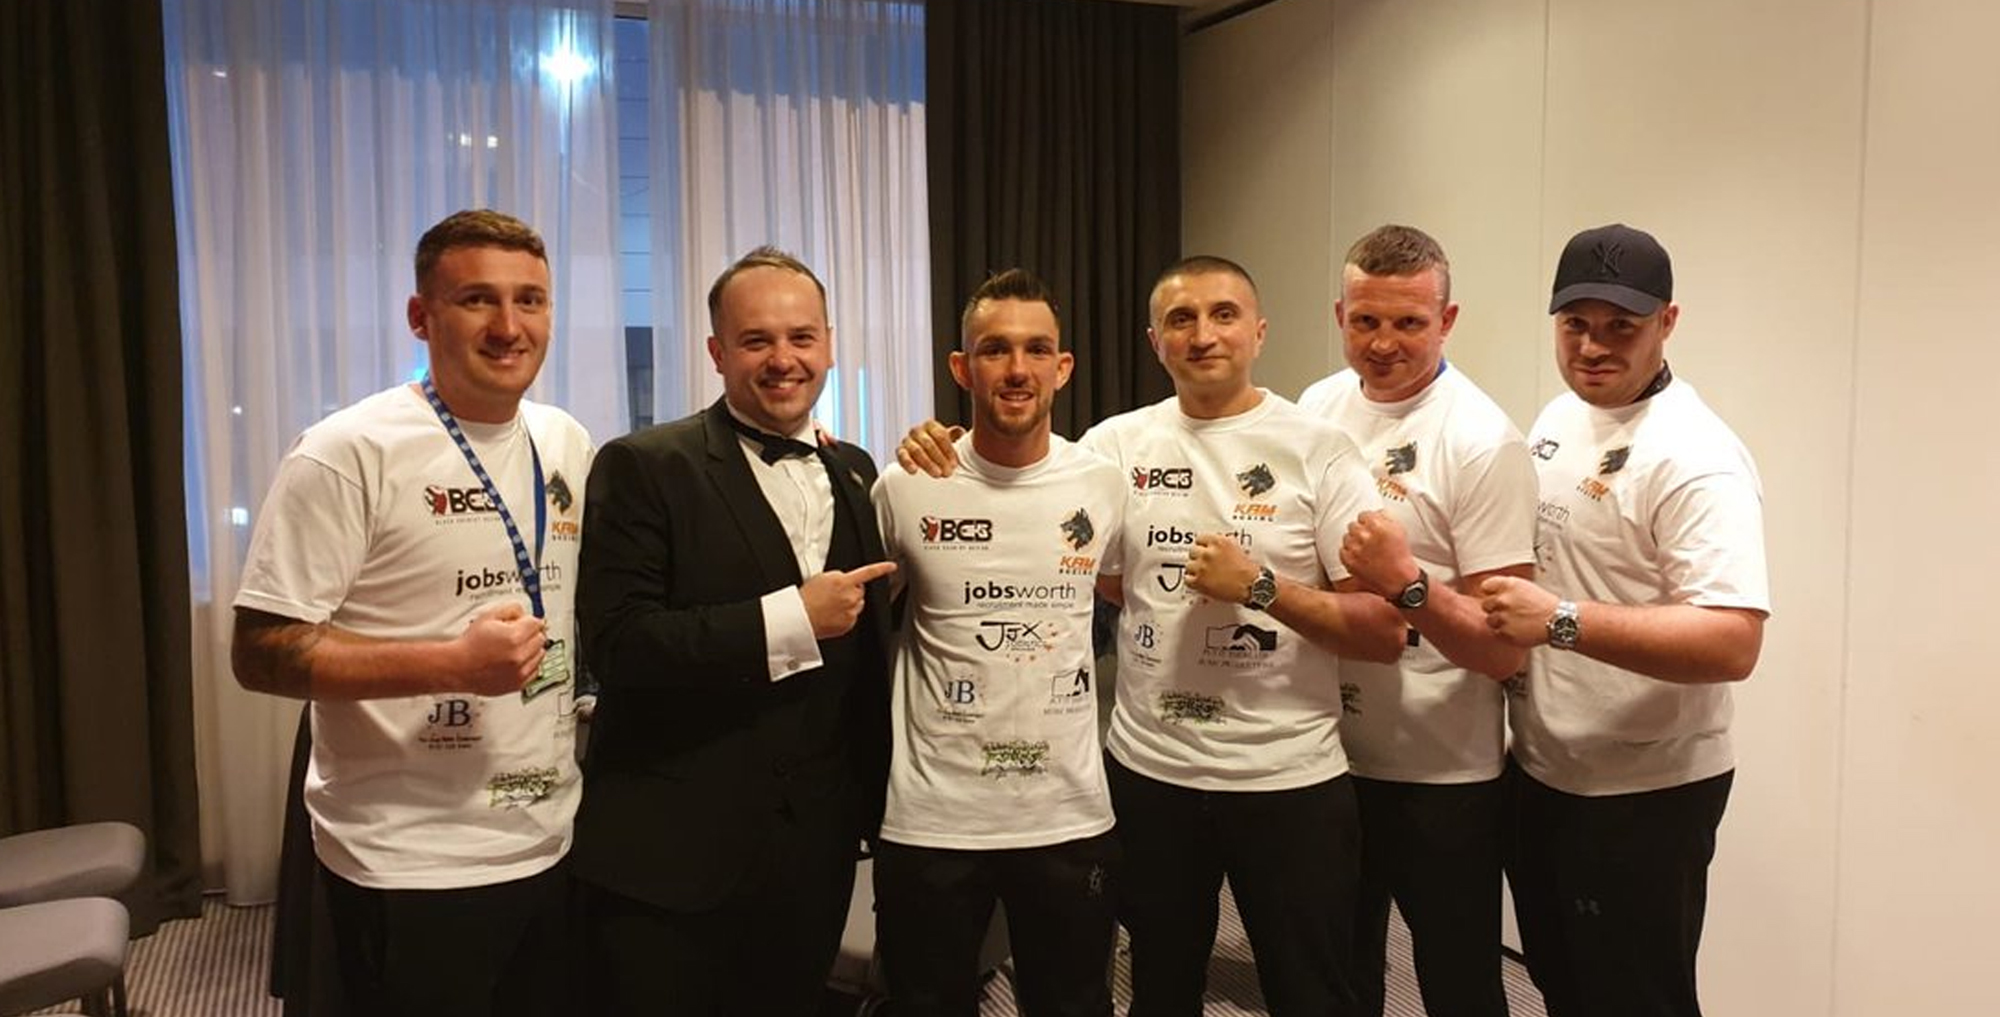 Kyle Williams with 5 supporters wearing Jobsworth branded t-shirts